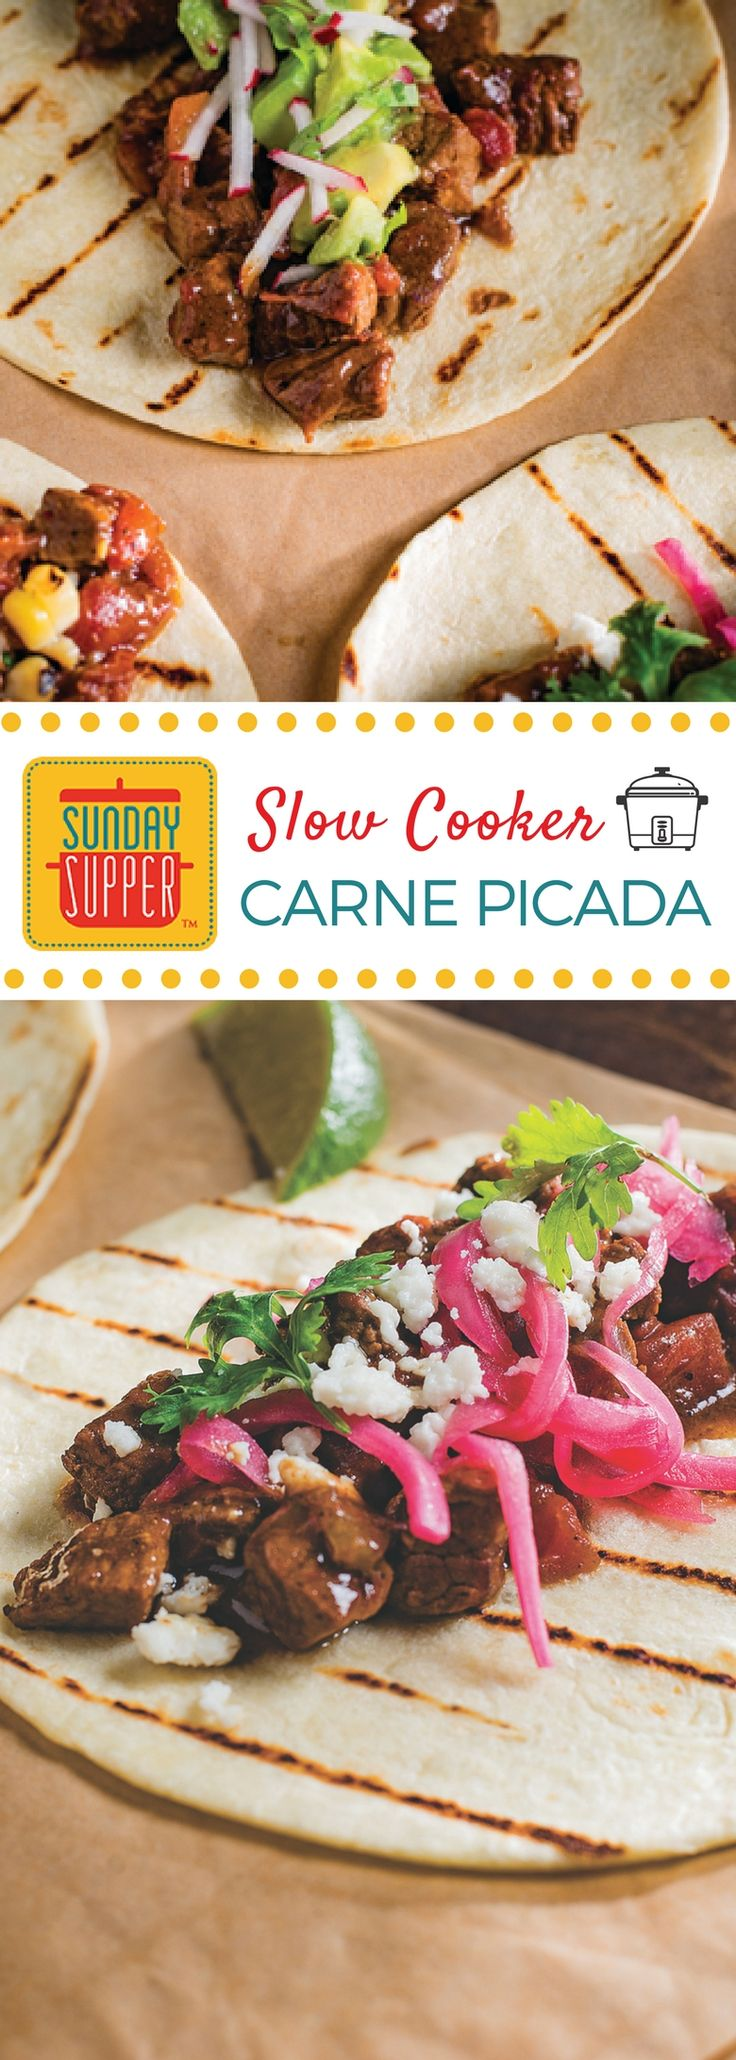 Slow Cooker Carne Picada boasts a spicy tomato gravy and the tenderest of beef chunks. Serve this Sunday Supper recipe in tortillas or over rice. #BestBeef #SundaySupper